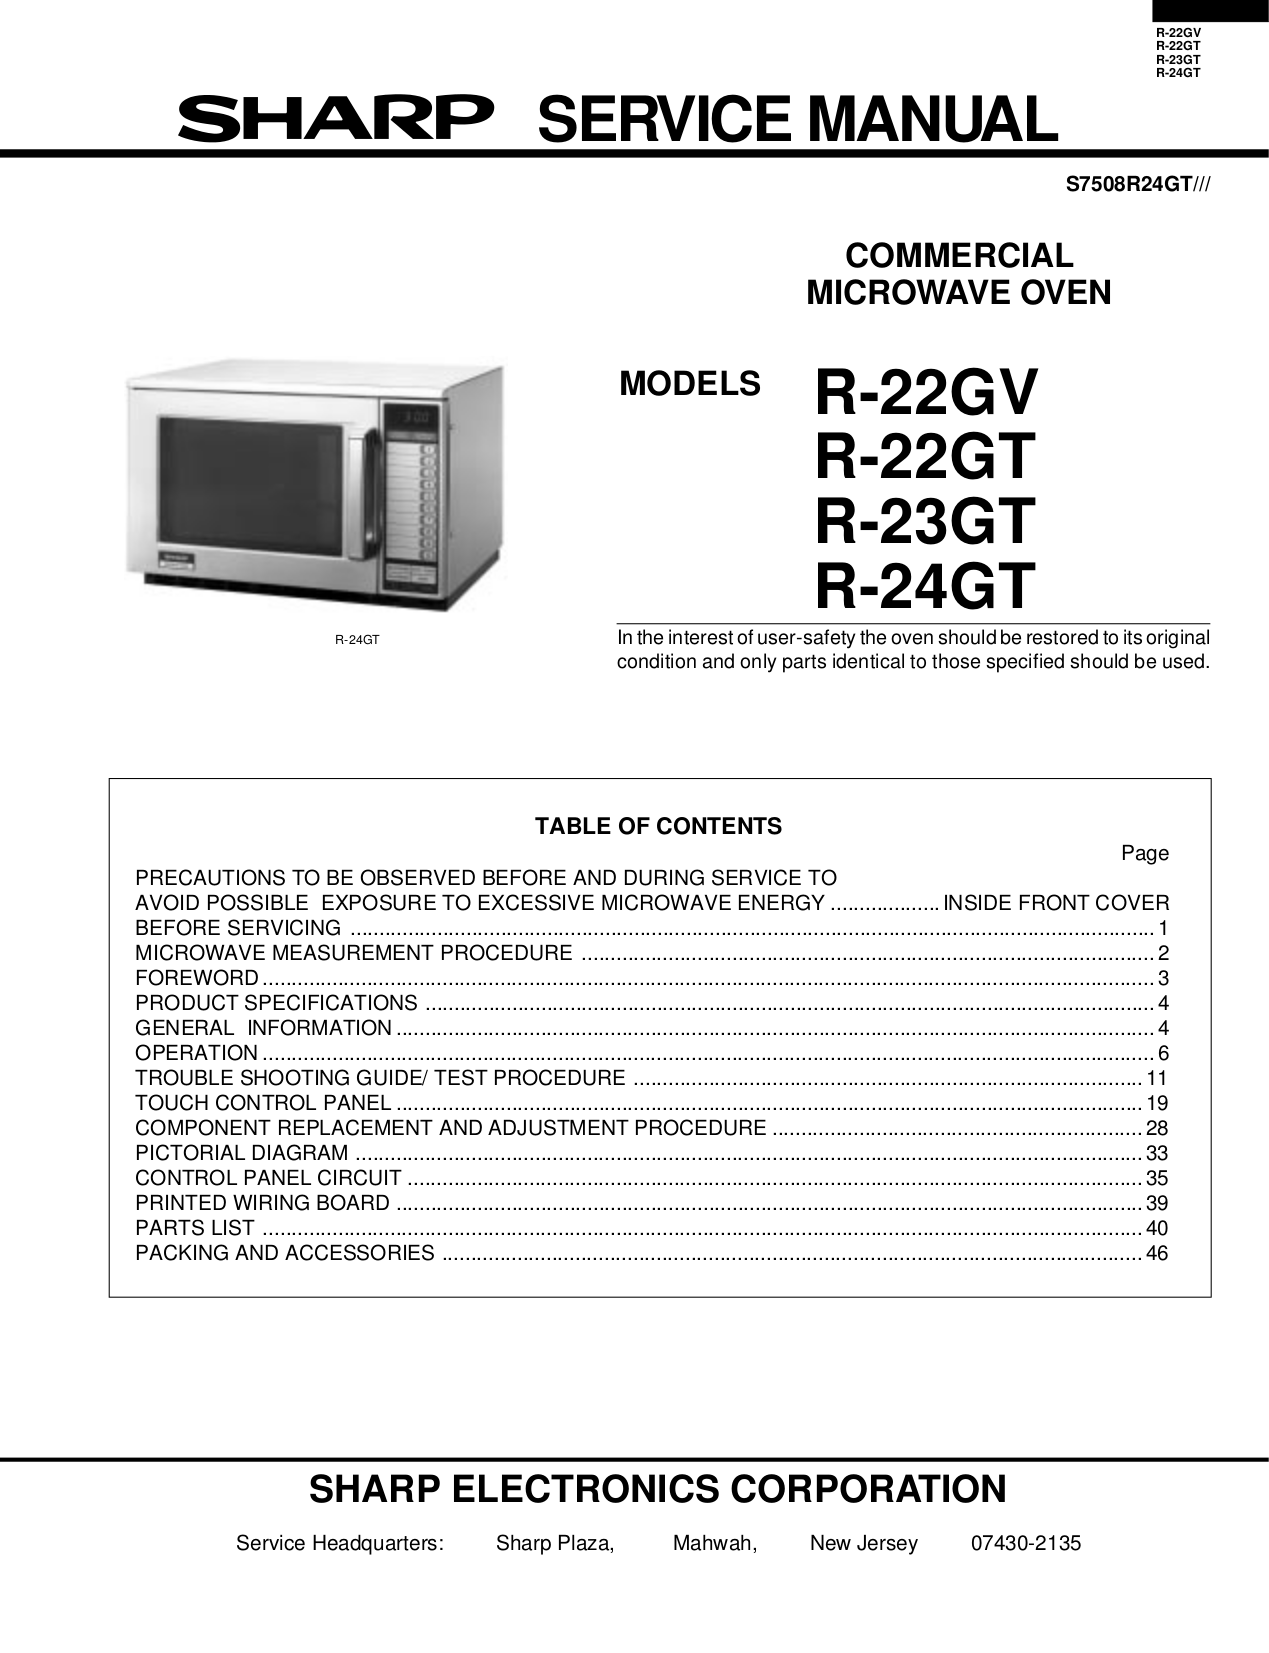 Microwave Service manual on